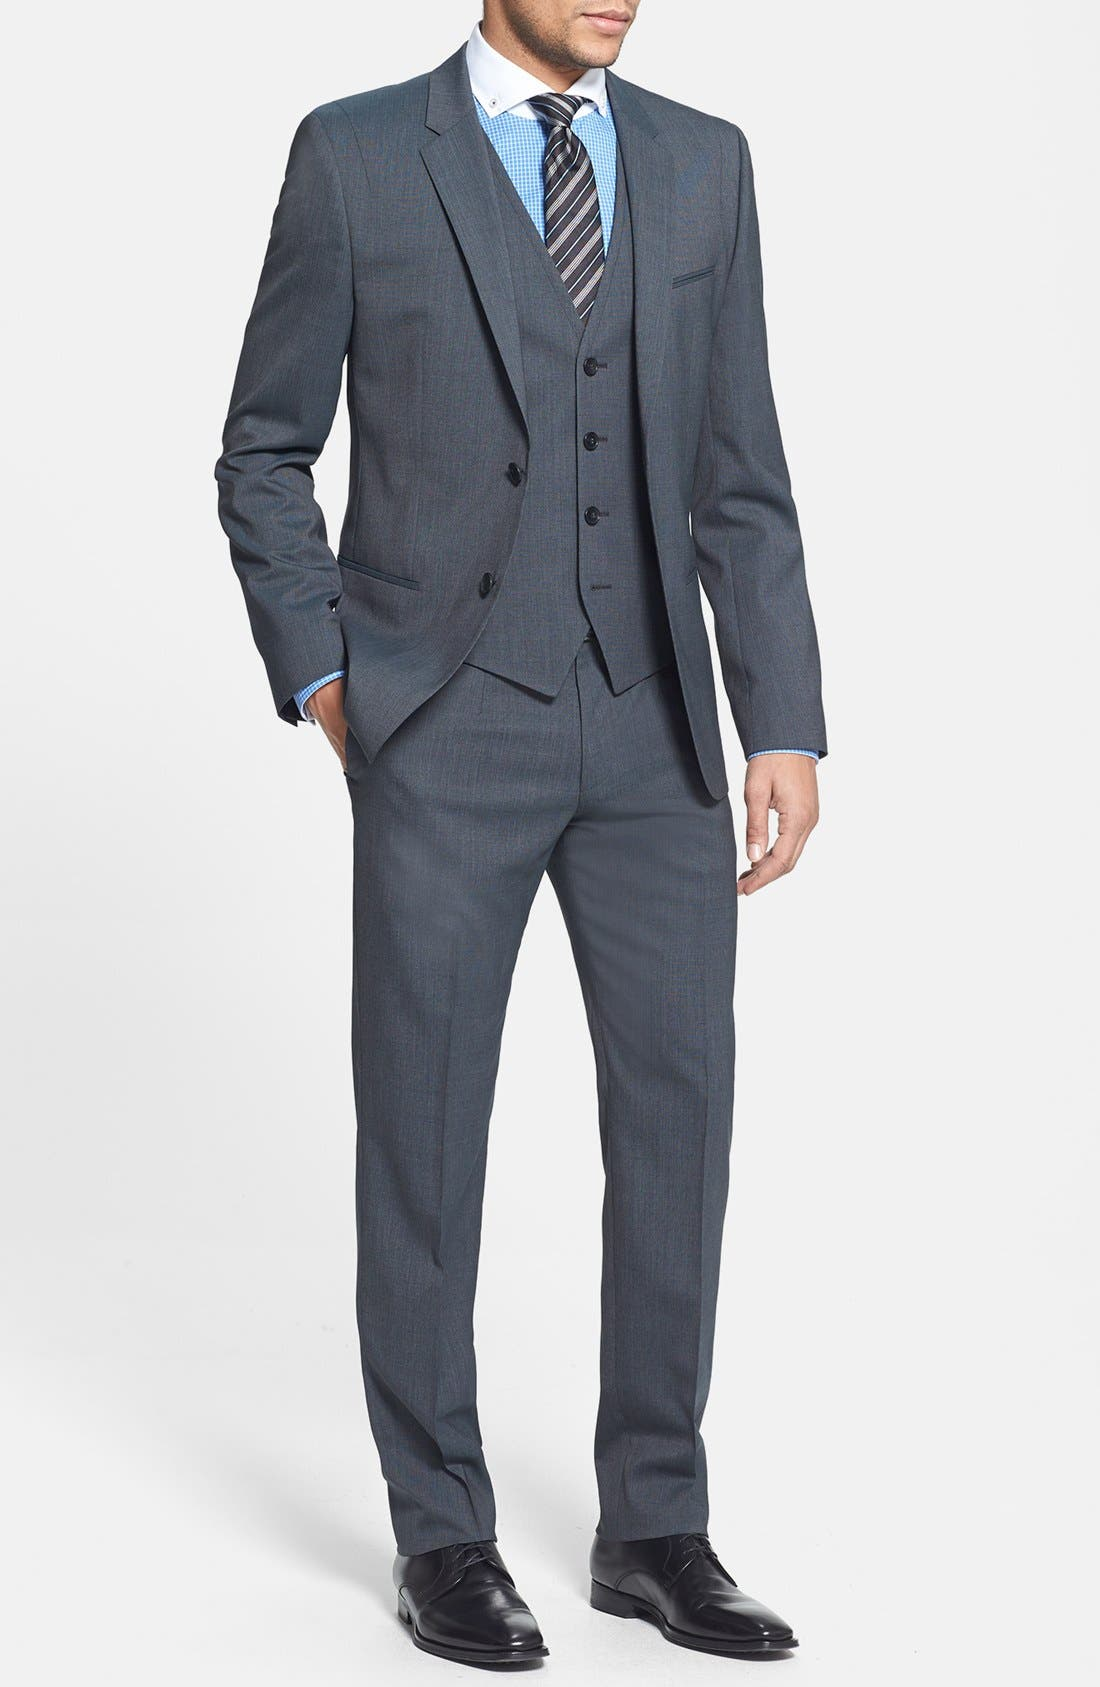 Main Image - HUGO 'Arant/Won/Hixby' Extra Trim Fit Three-Piece Suit